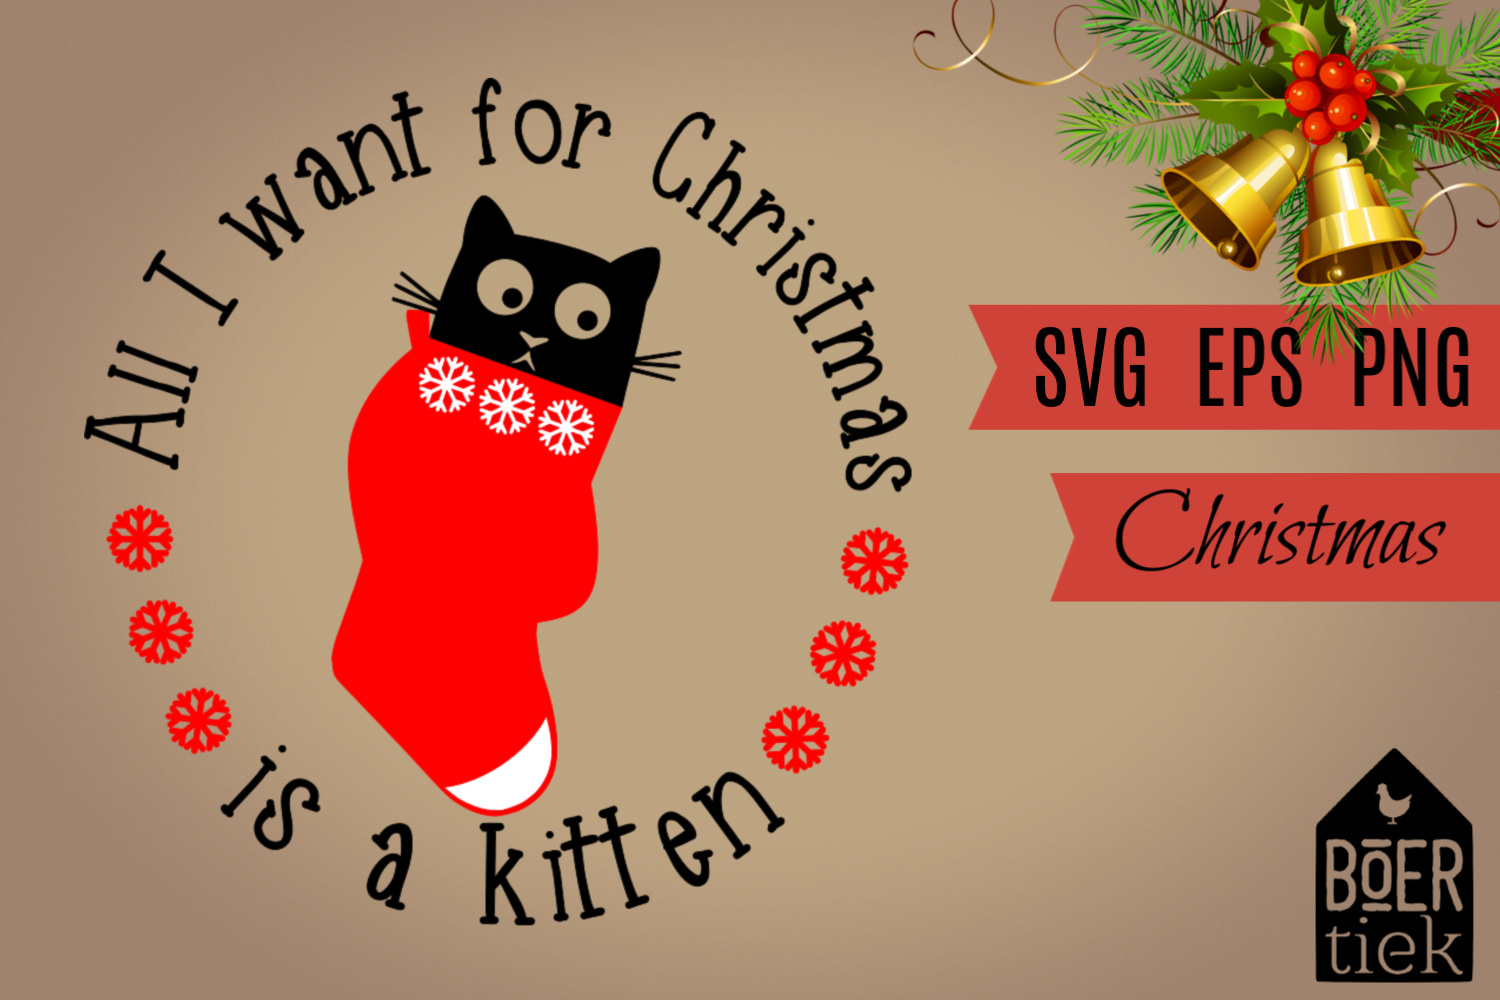 Download Free All I Want For Christmas Is A Kitten Graphic By Boertiek for Cricut Explore, Silhouette and other cutting machines.